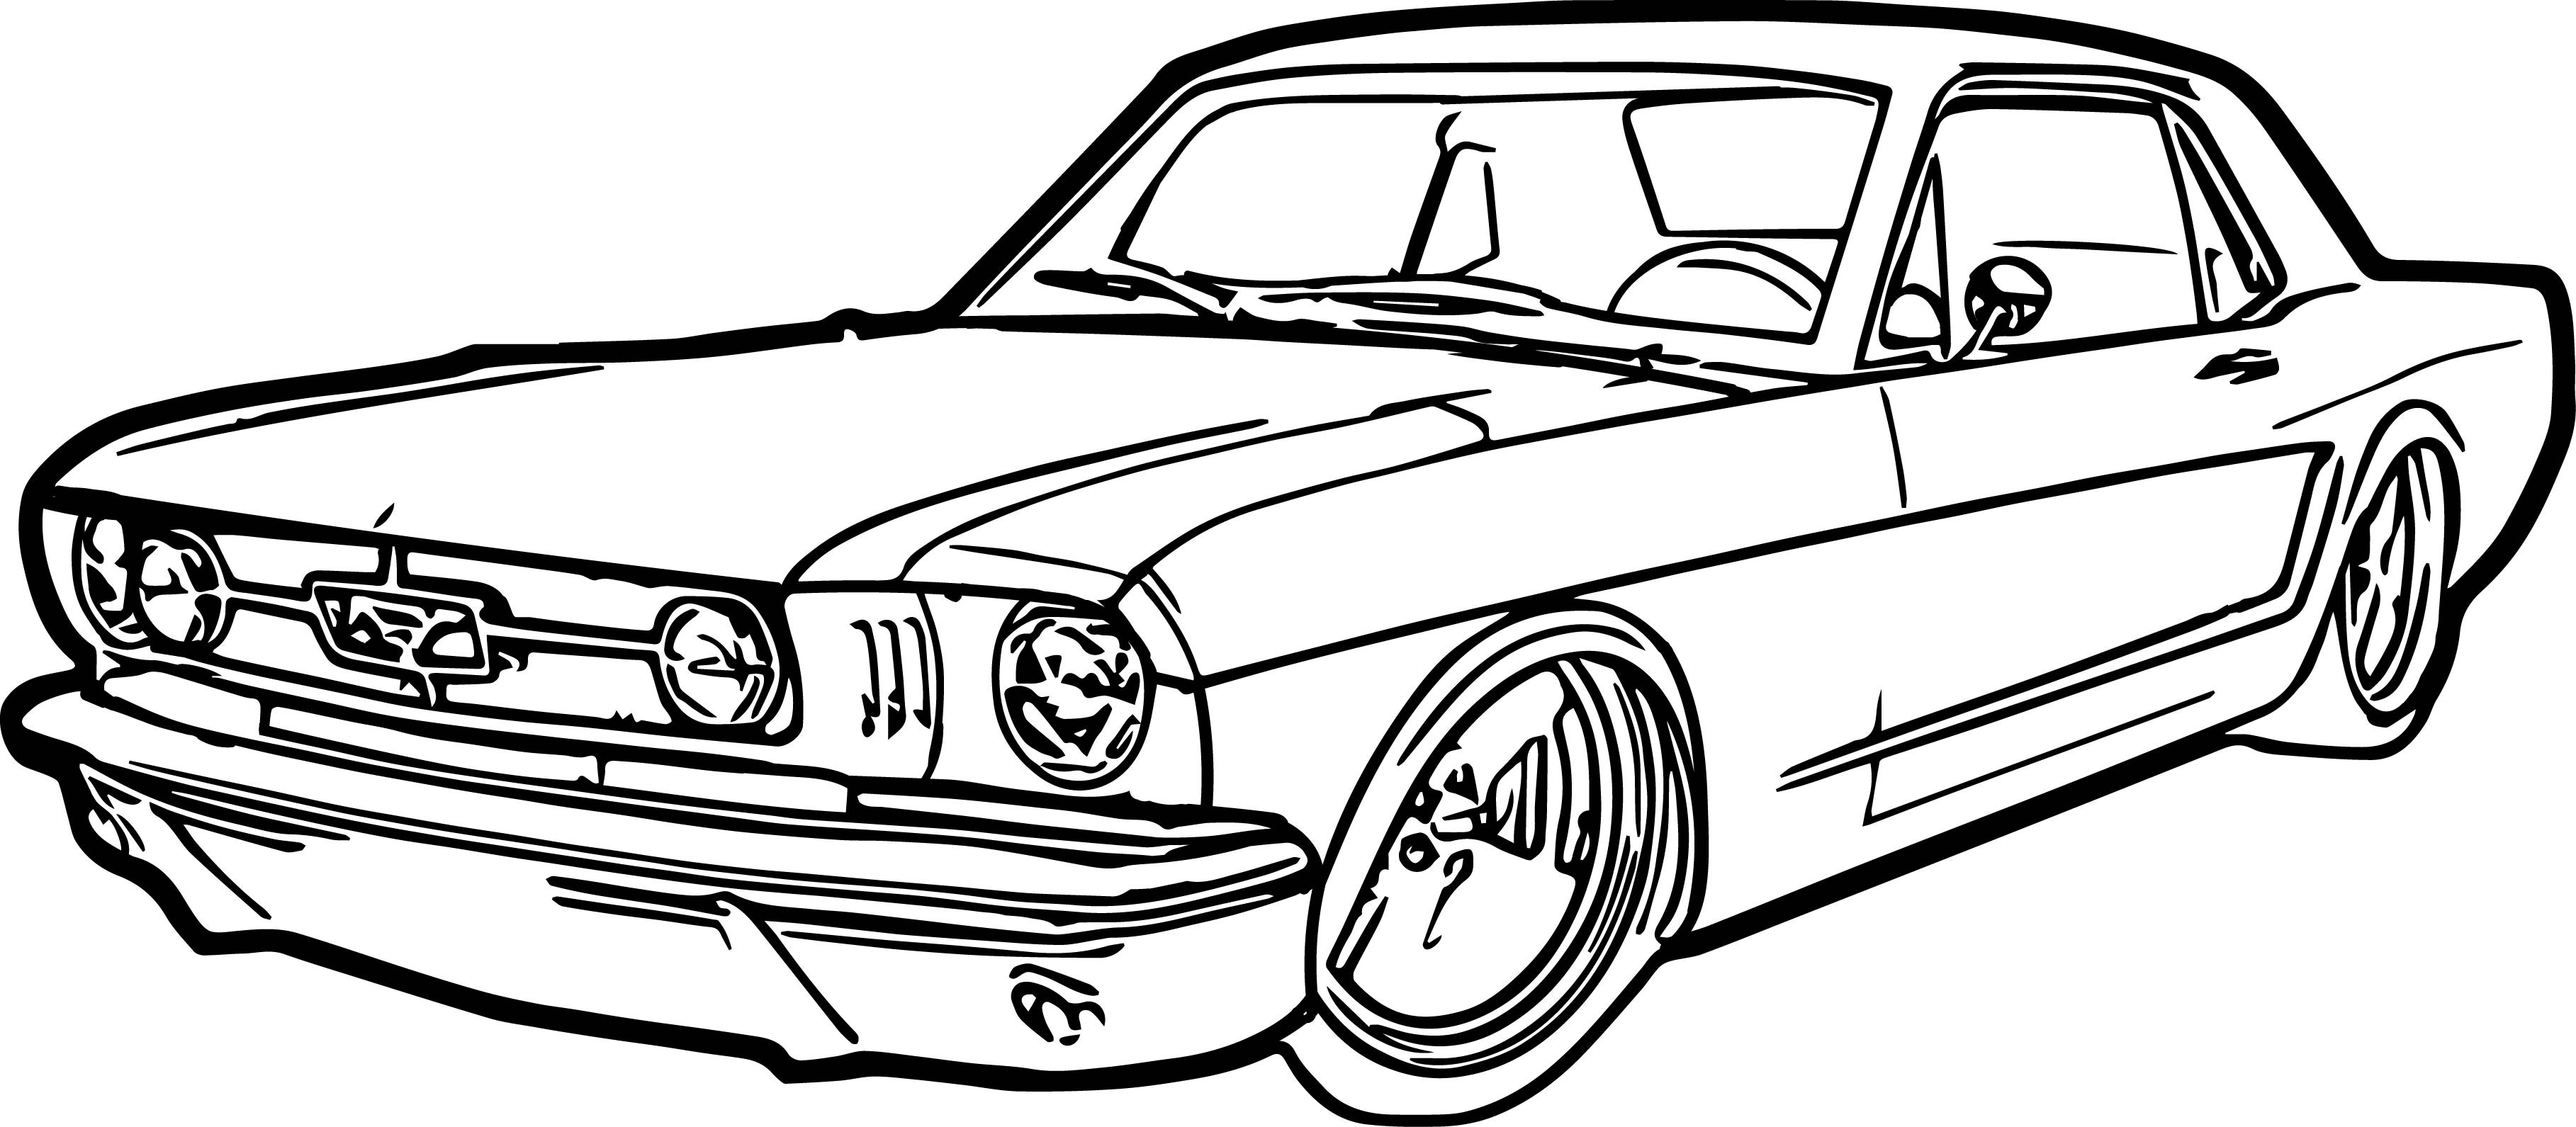 3635x1591 super car chevrolet camaro coloring page new modest design mustang